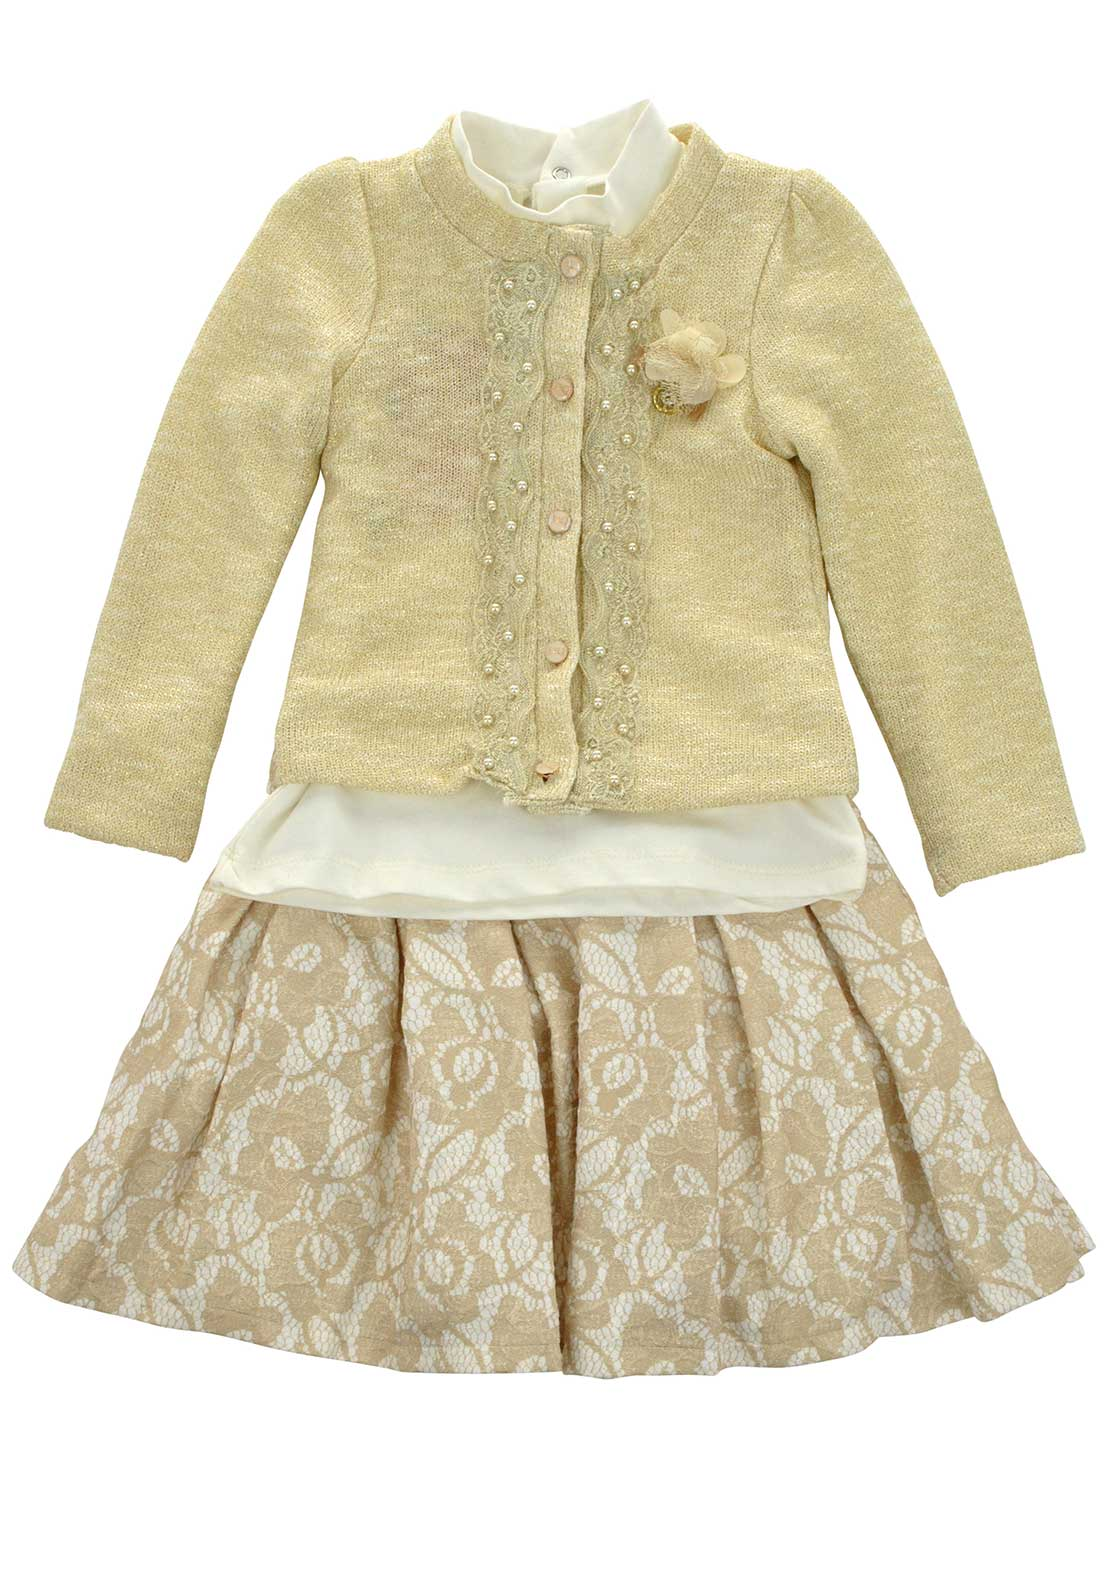 Couche Tot Girls Top, Knitted Cardigan and Skirt, Gold